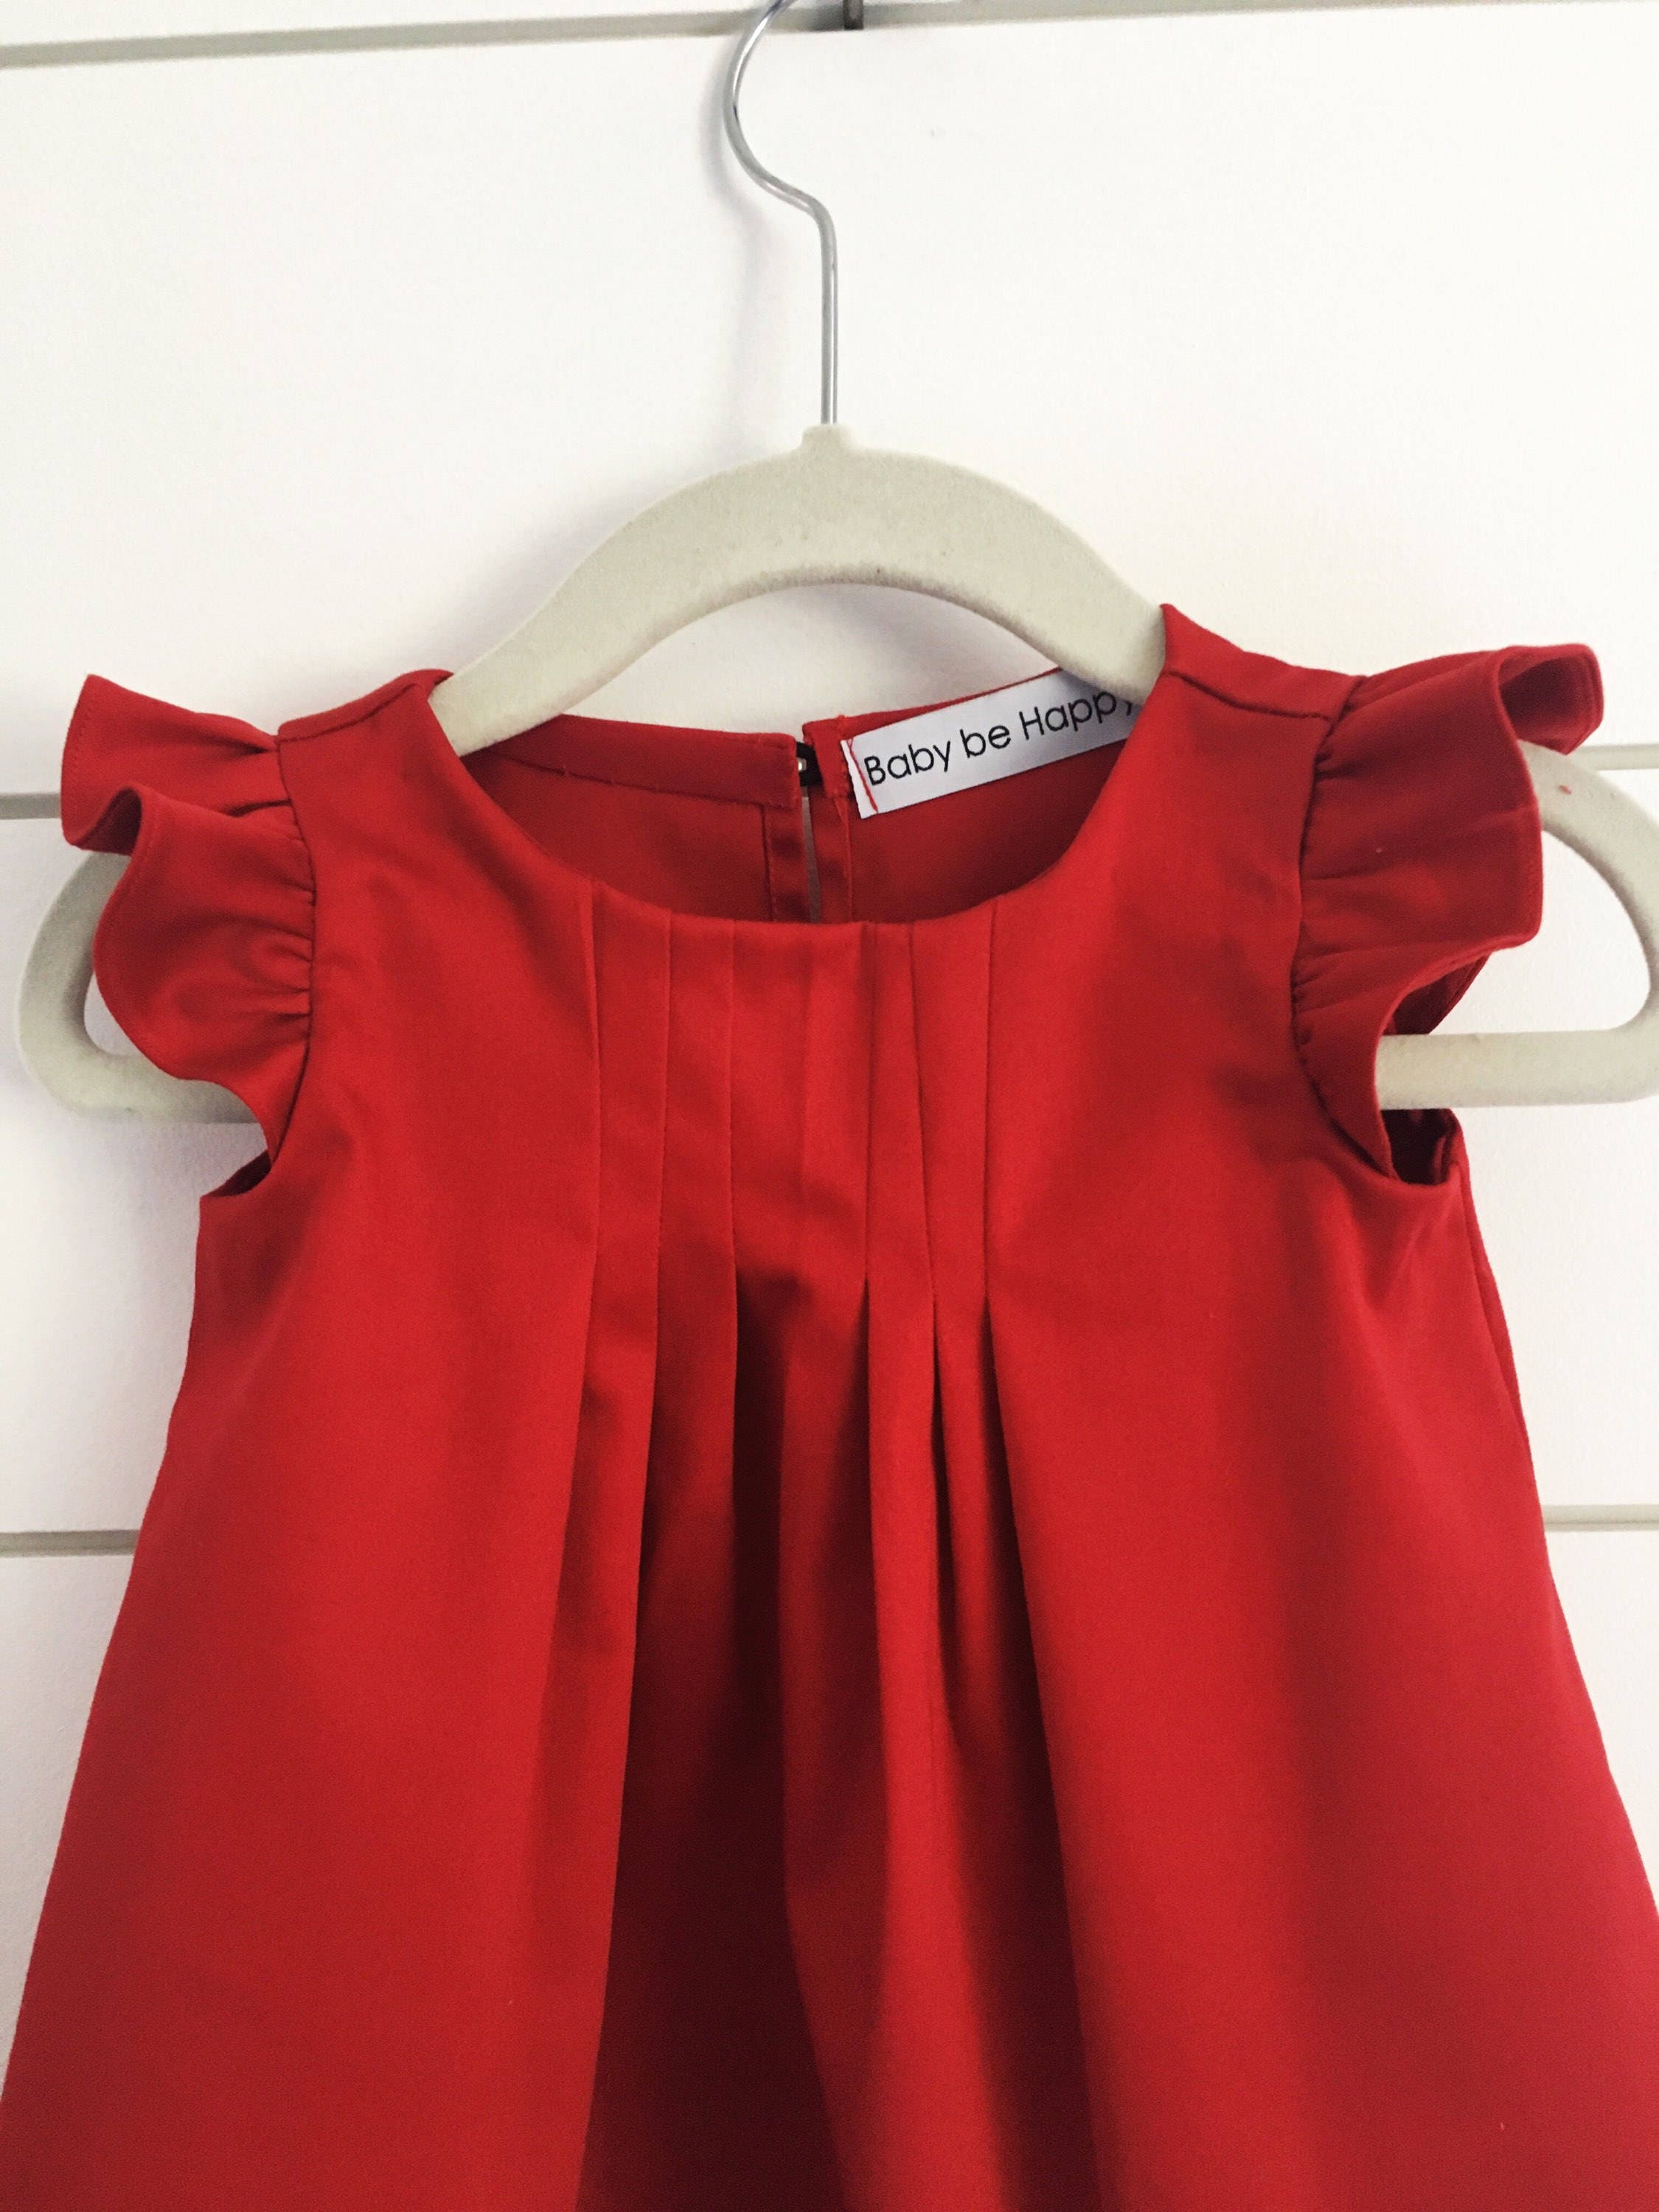 Red Toddler Dress Flutter Sleeve Dress Red Baby Dress Girls Red